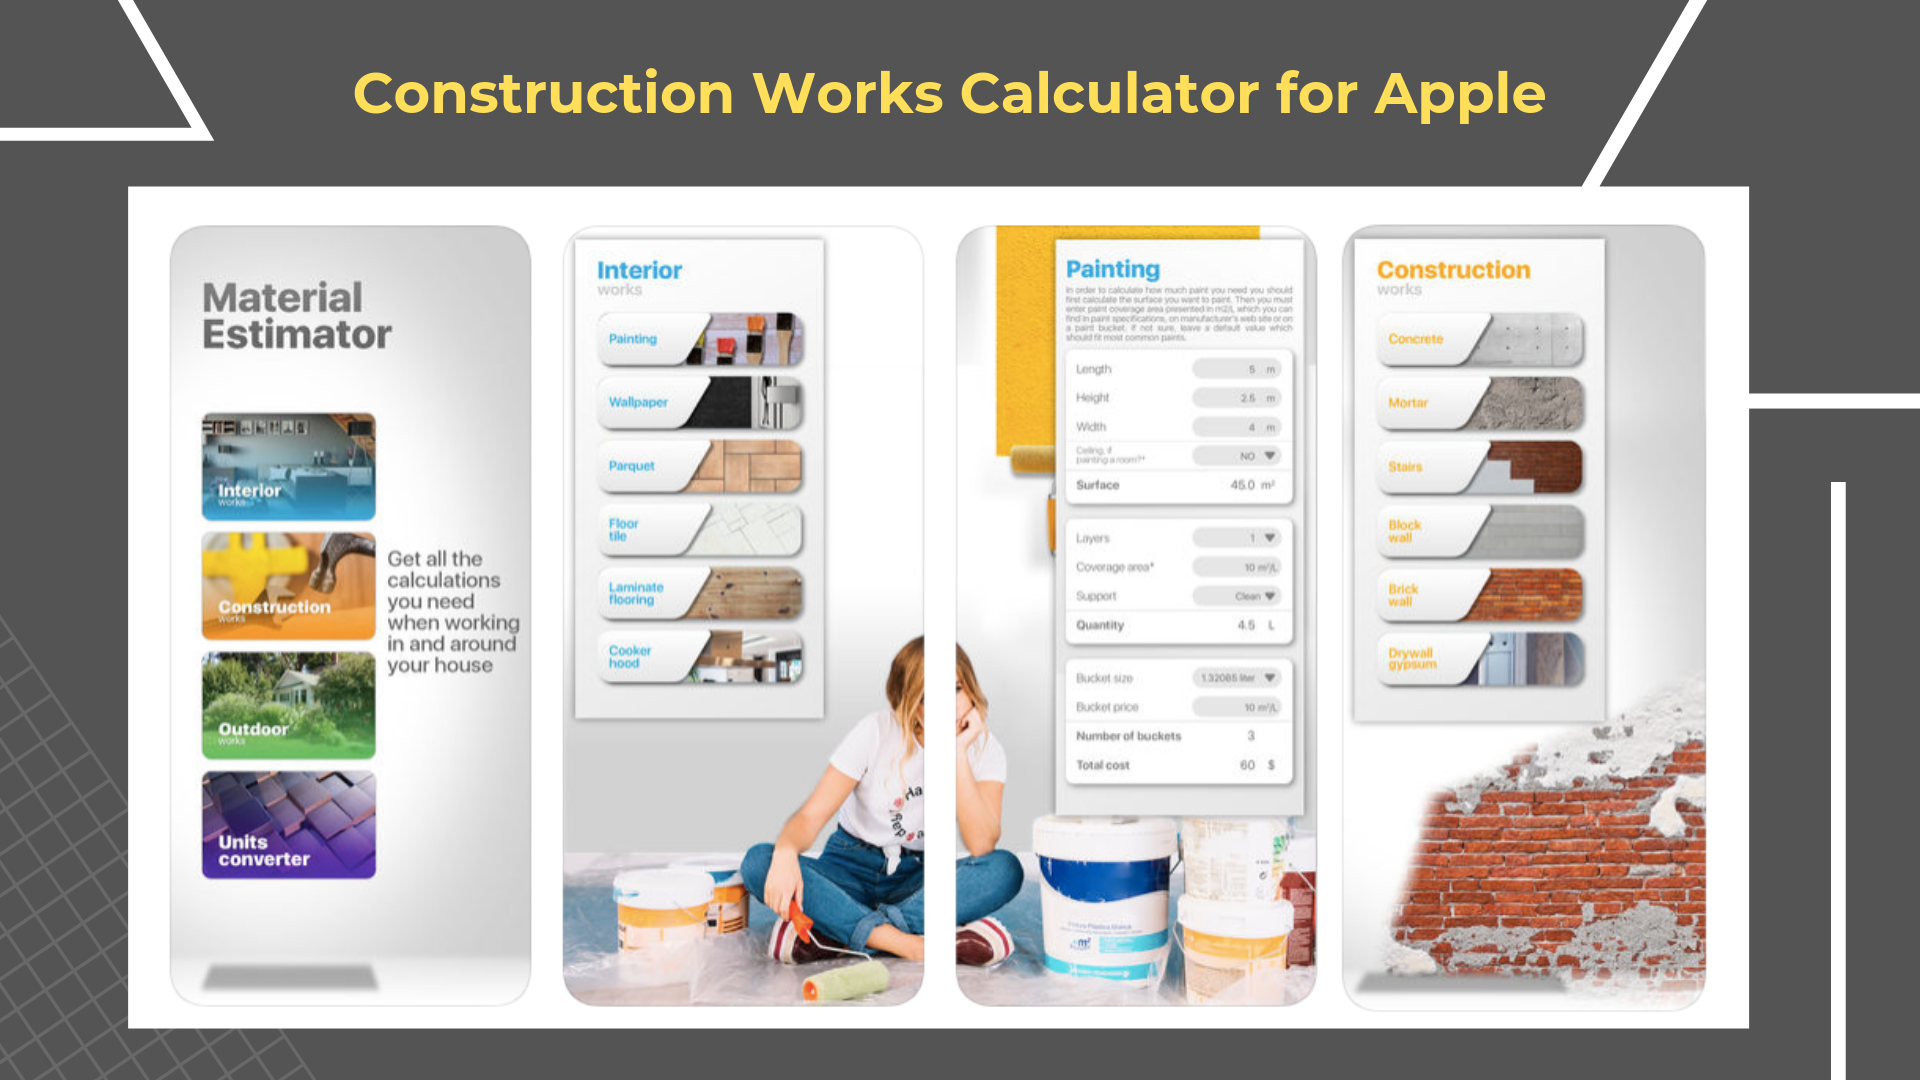 17 Free Construction Apps You Need to Download Right Now | Construction Works Calculator App suggested by Archisnapper of Development